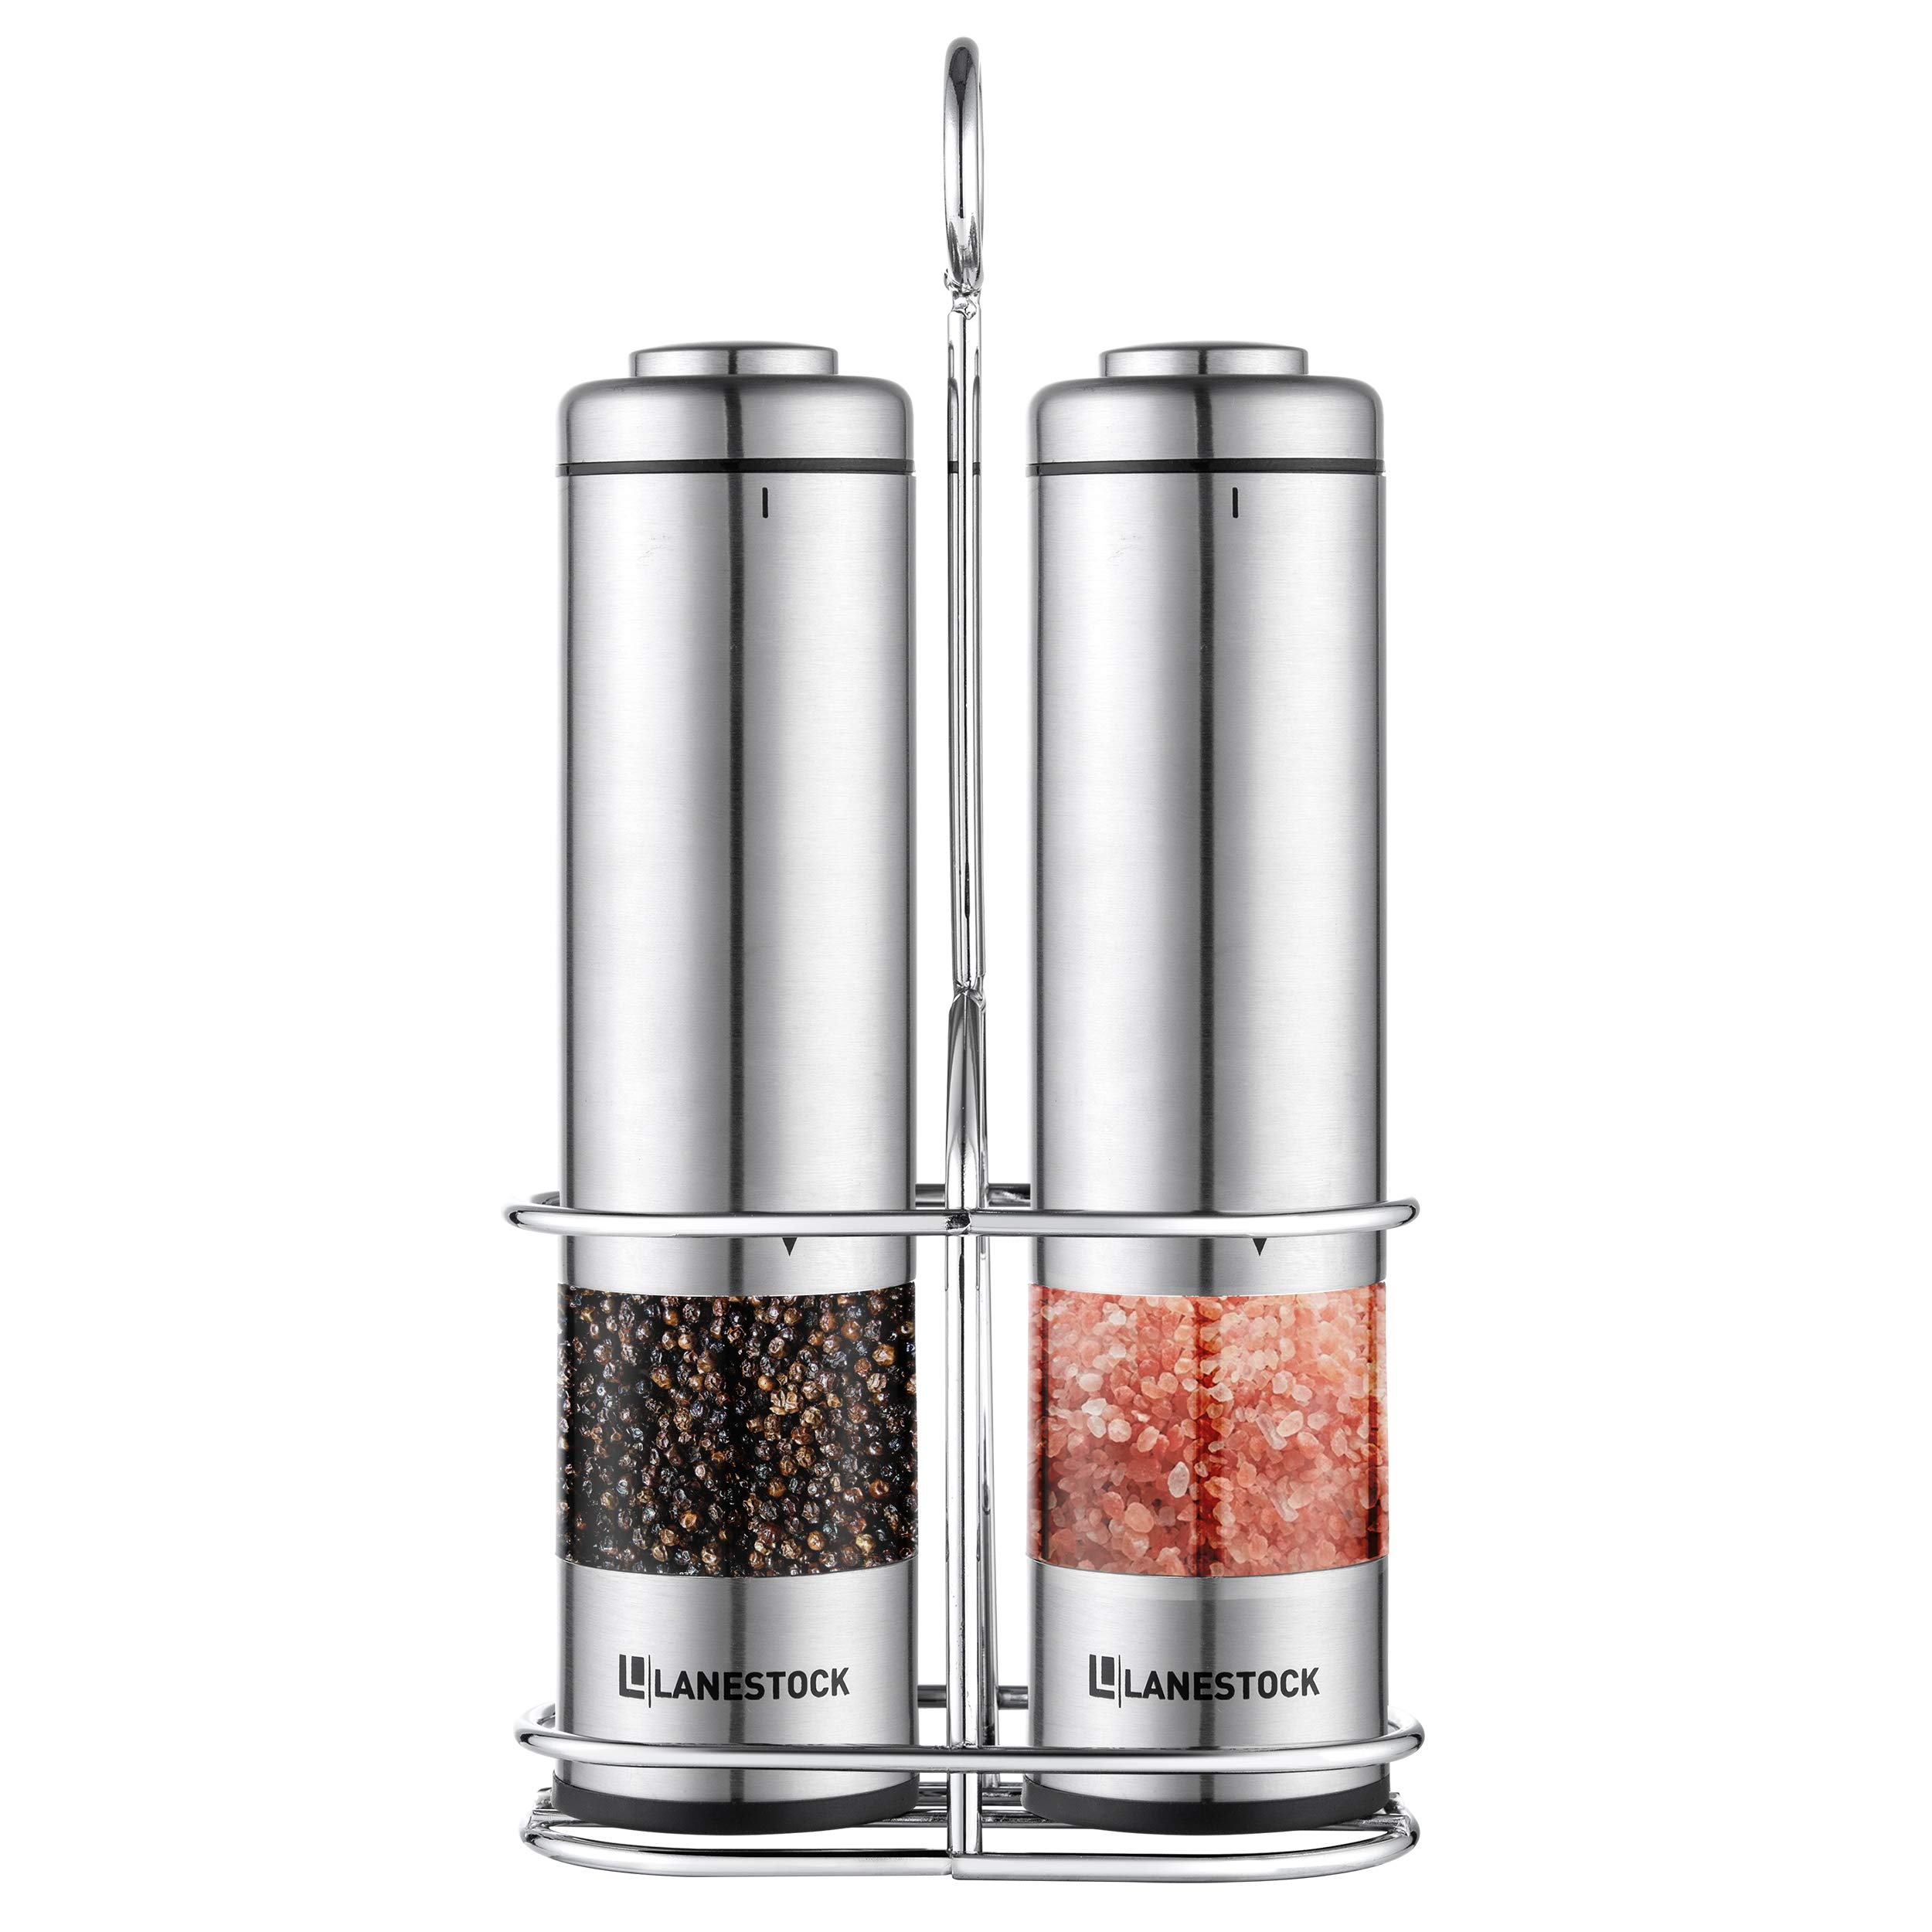 Electric Salt and pepper grinder by Lanestock - Combo set of battery operated stainless steel spice grinders with stand - LED light and adjustable knob on each mill - Powerful motor - long life-span by Lanestock